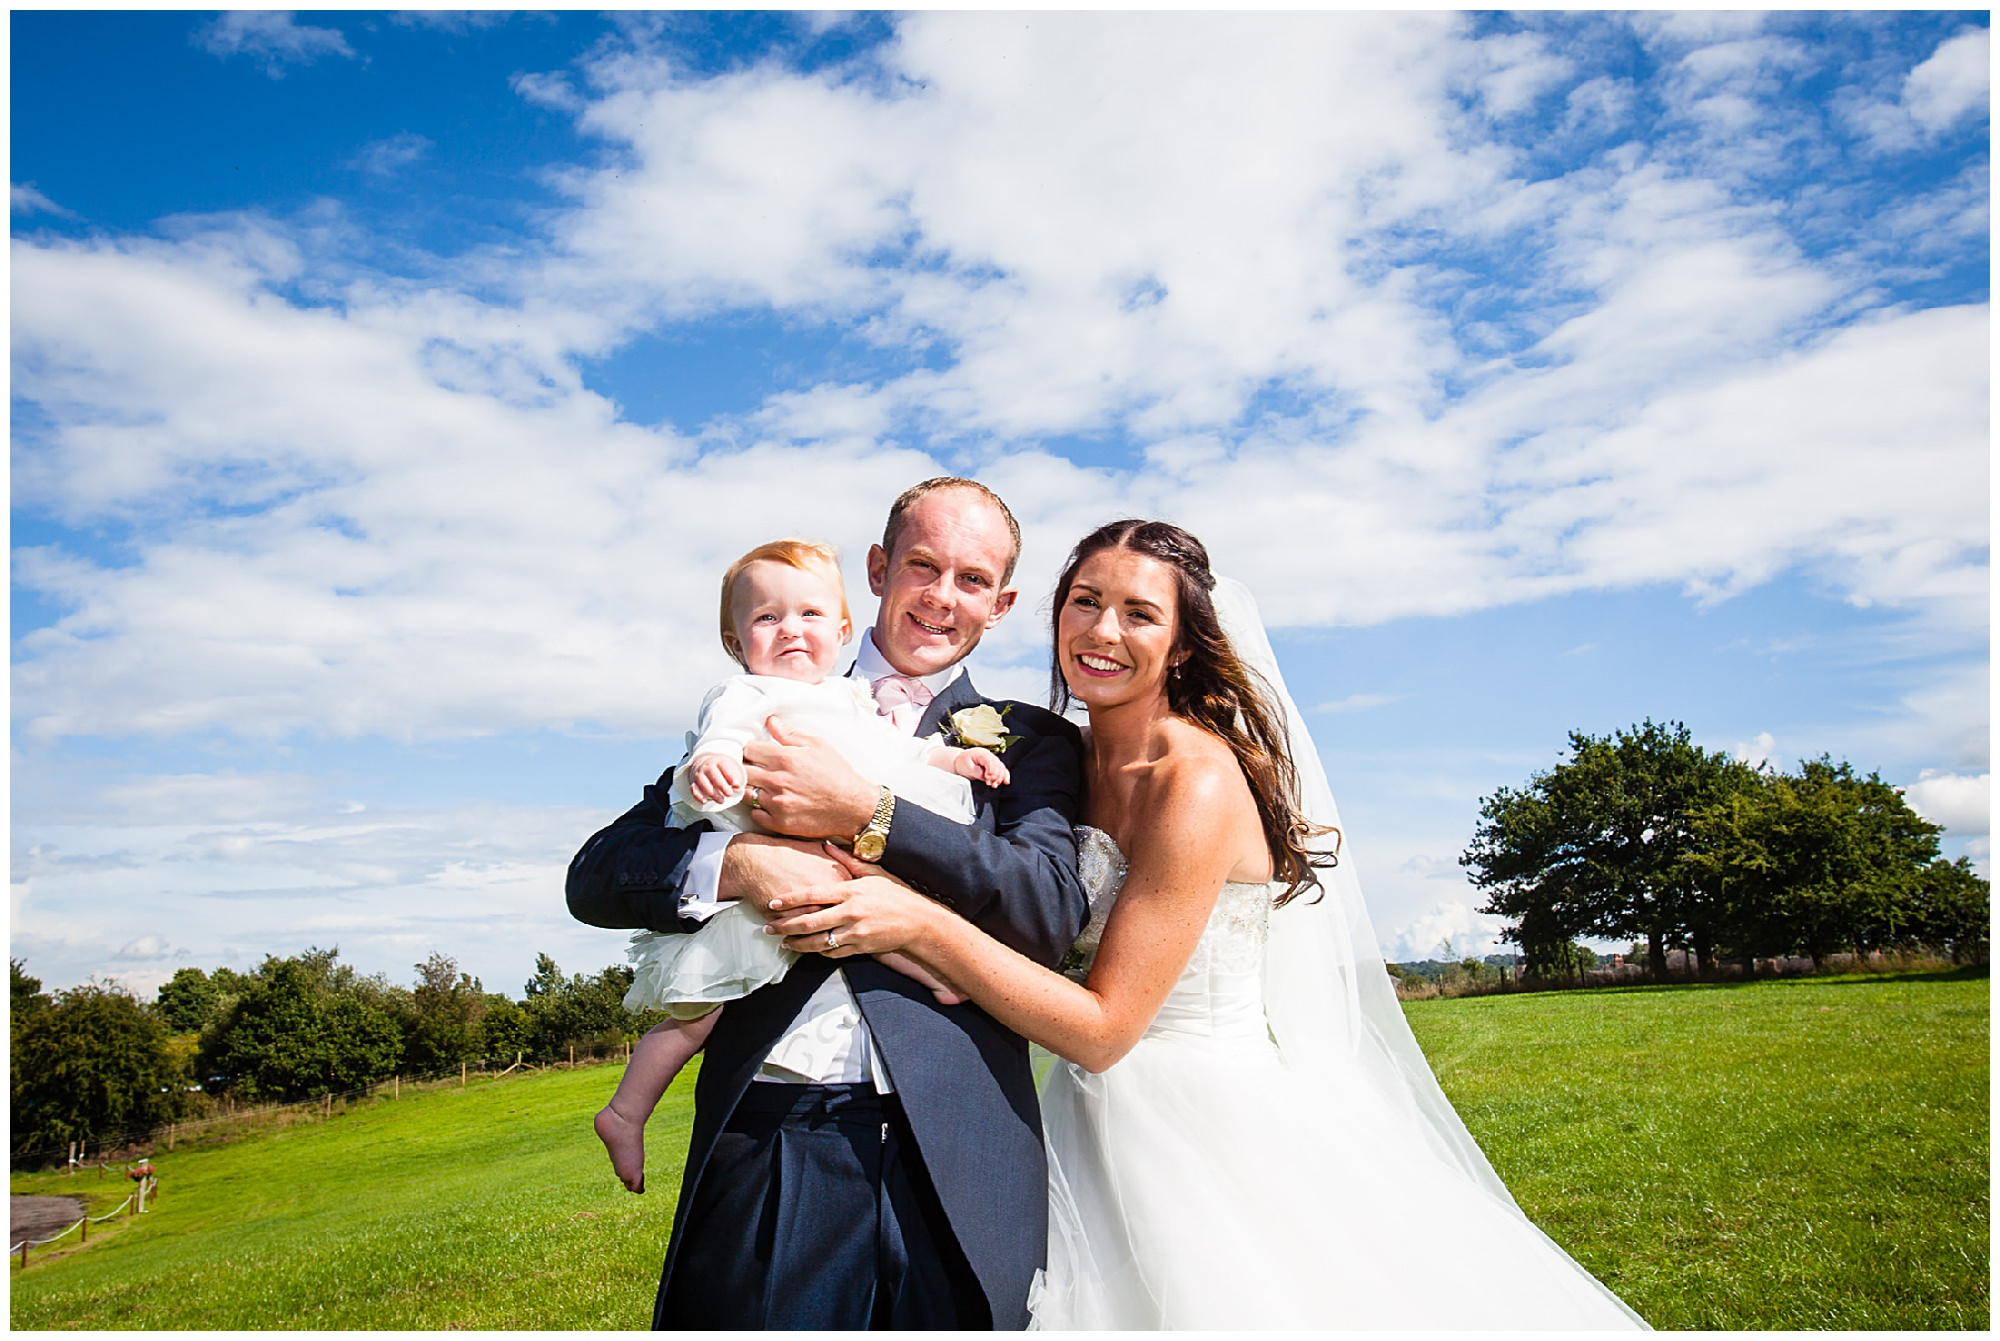 bride and groom with their daughter at their home marquee wedding - St James' Church Audlem Wedding Photography